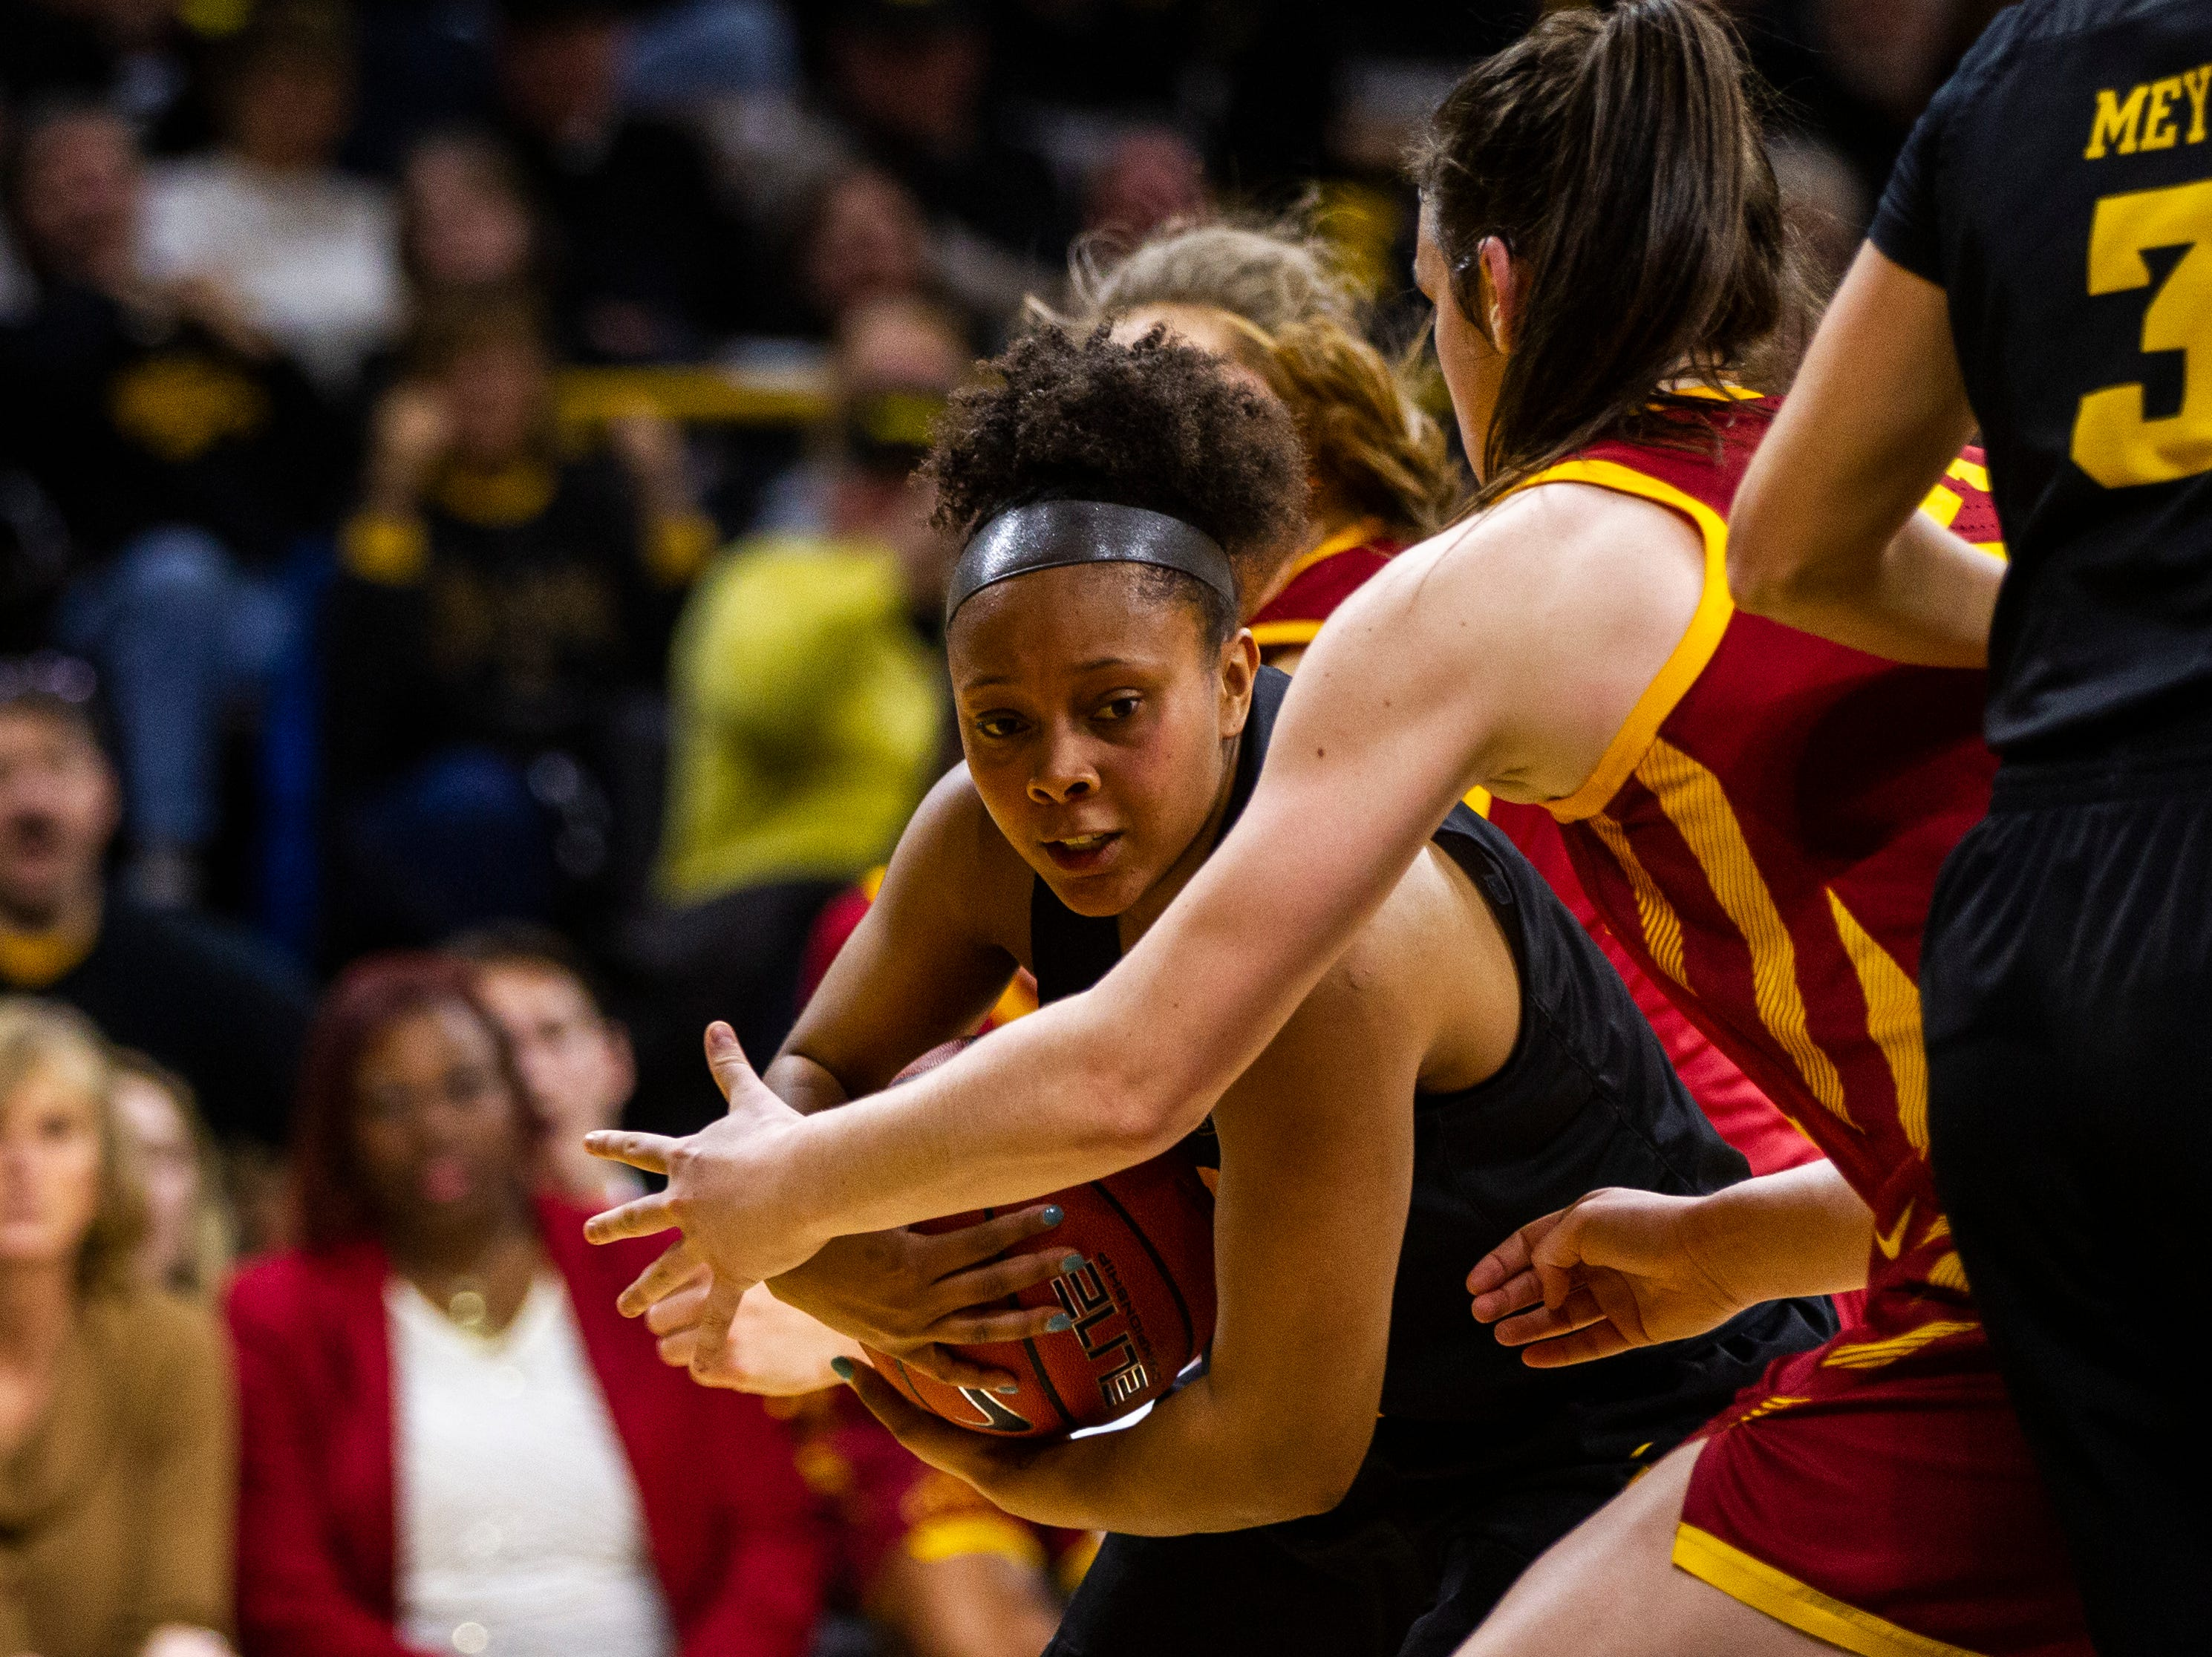 Iowa guard Tania Davis (11) gets defended in the paint by Iowa State guard Bridget Carleton (21) during a Cy-Hawk series NCAA women's basketball game on Wednesday, Dec. 5, 2018, at Carver-Hawkeye Arena in Iowa City.